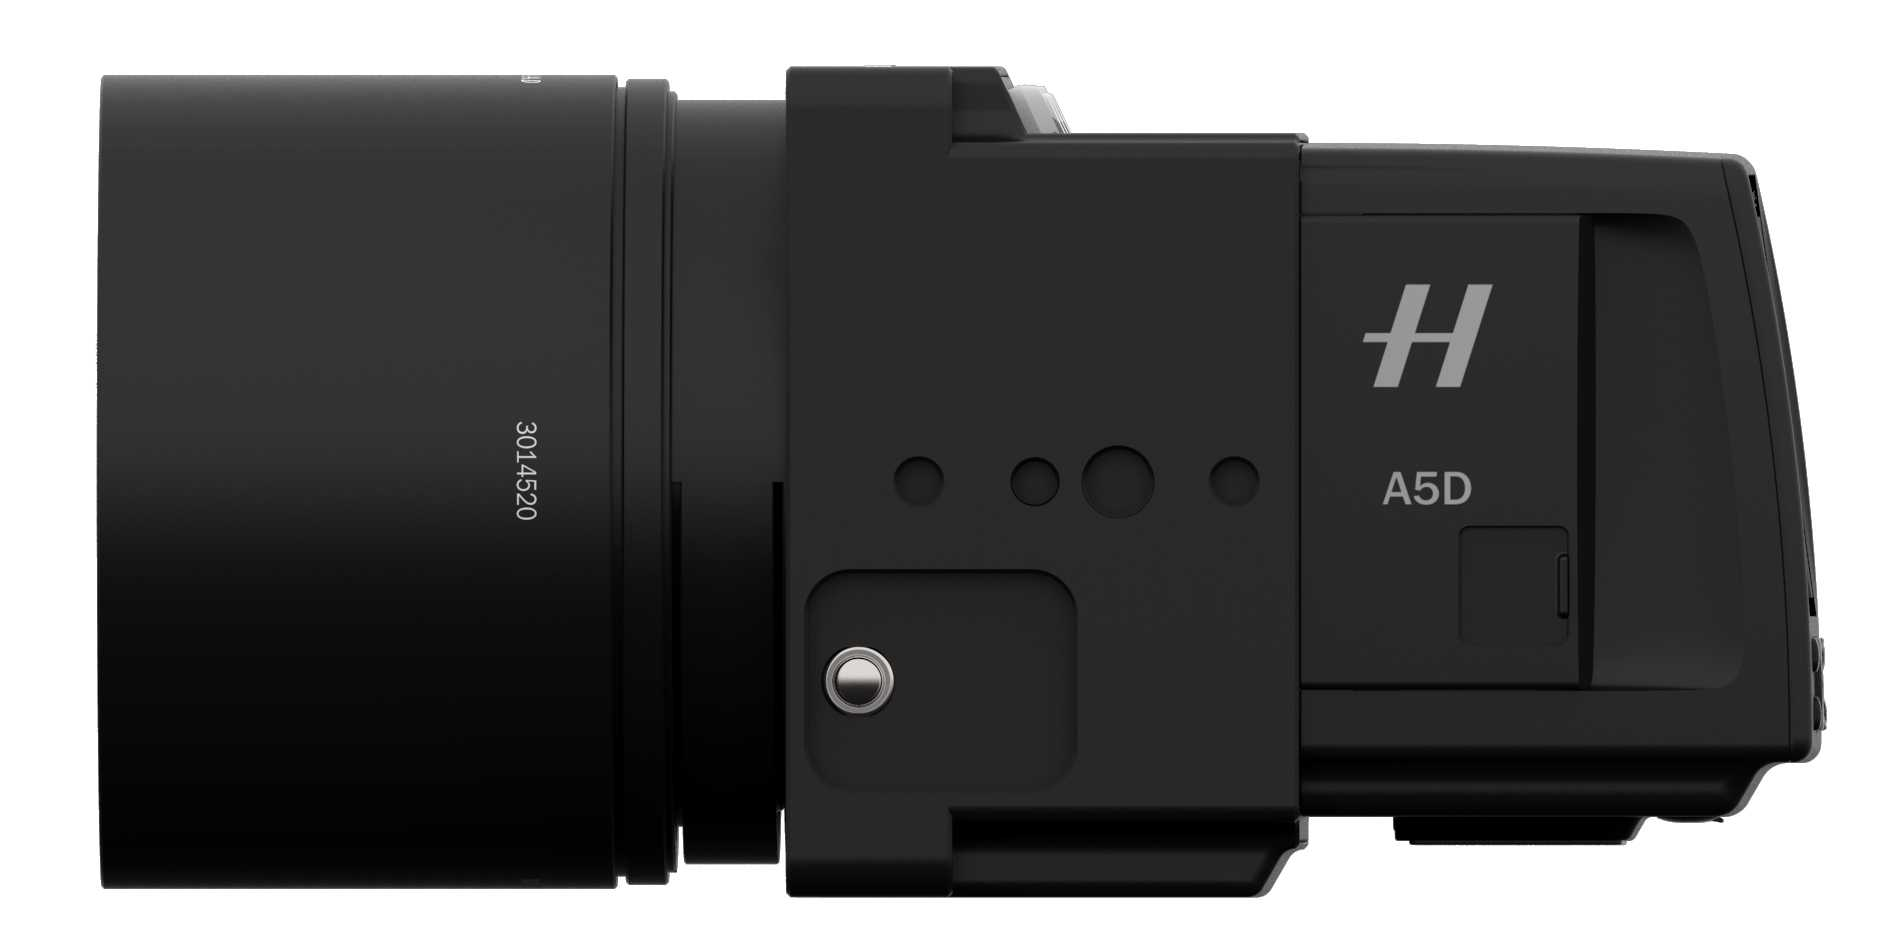 Hasselblad_A5D_Aerial